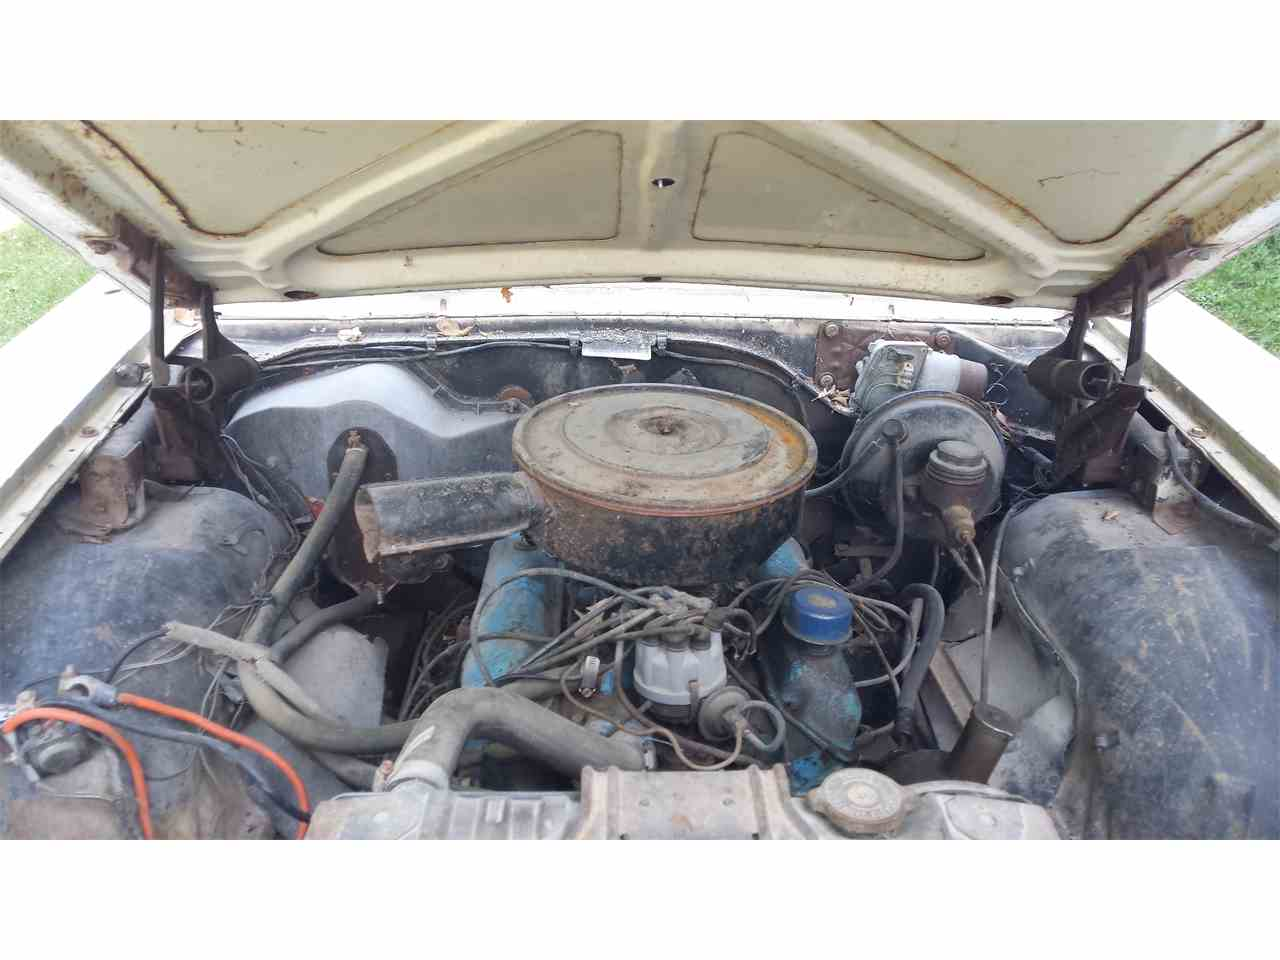 Large Picture of Classic '66 Galaxie 500 XL located in Manitoba - $2,000.00 Offered by a Private Seller - JAVL